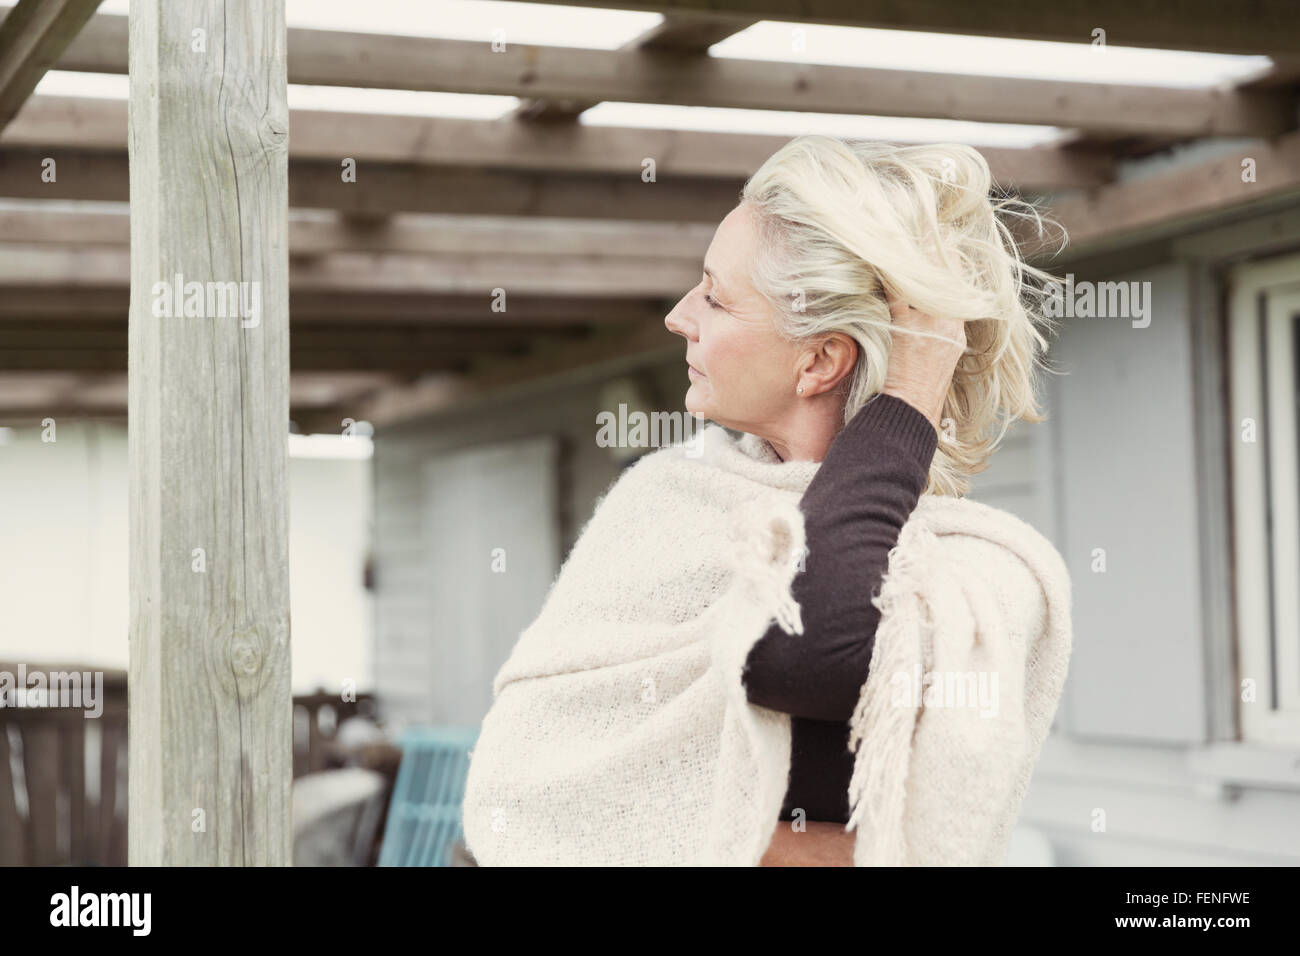 Senior woman with hand in hair wearing shawl on porch - Stock Image